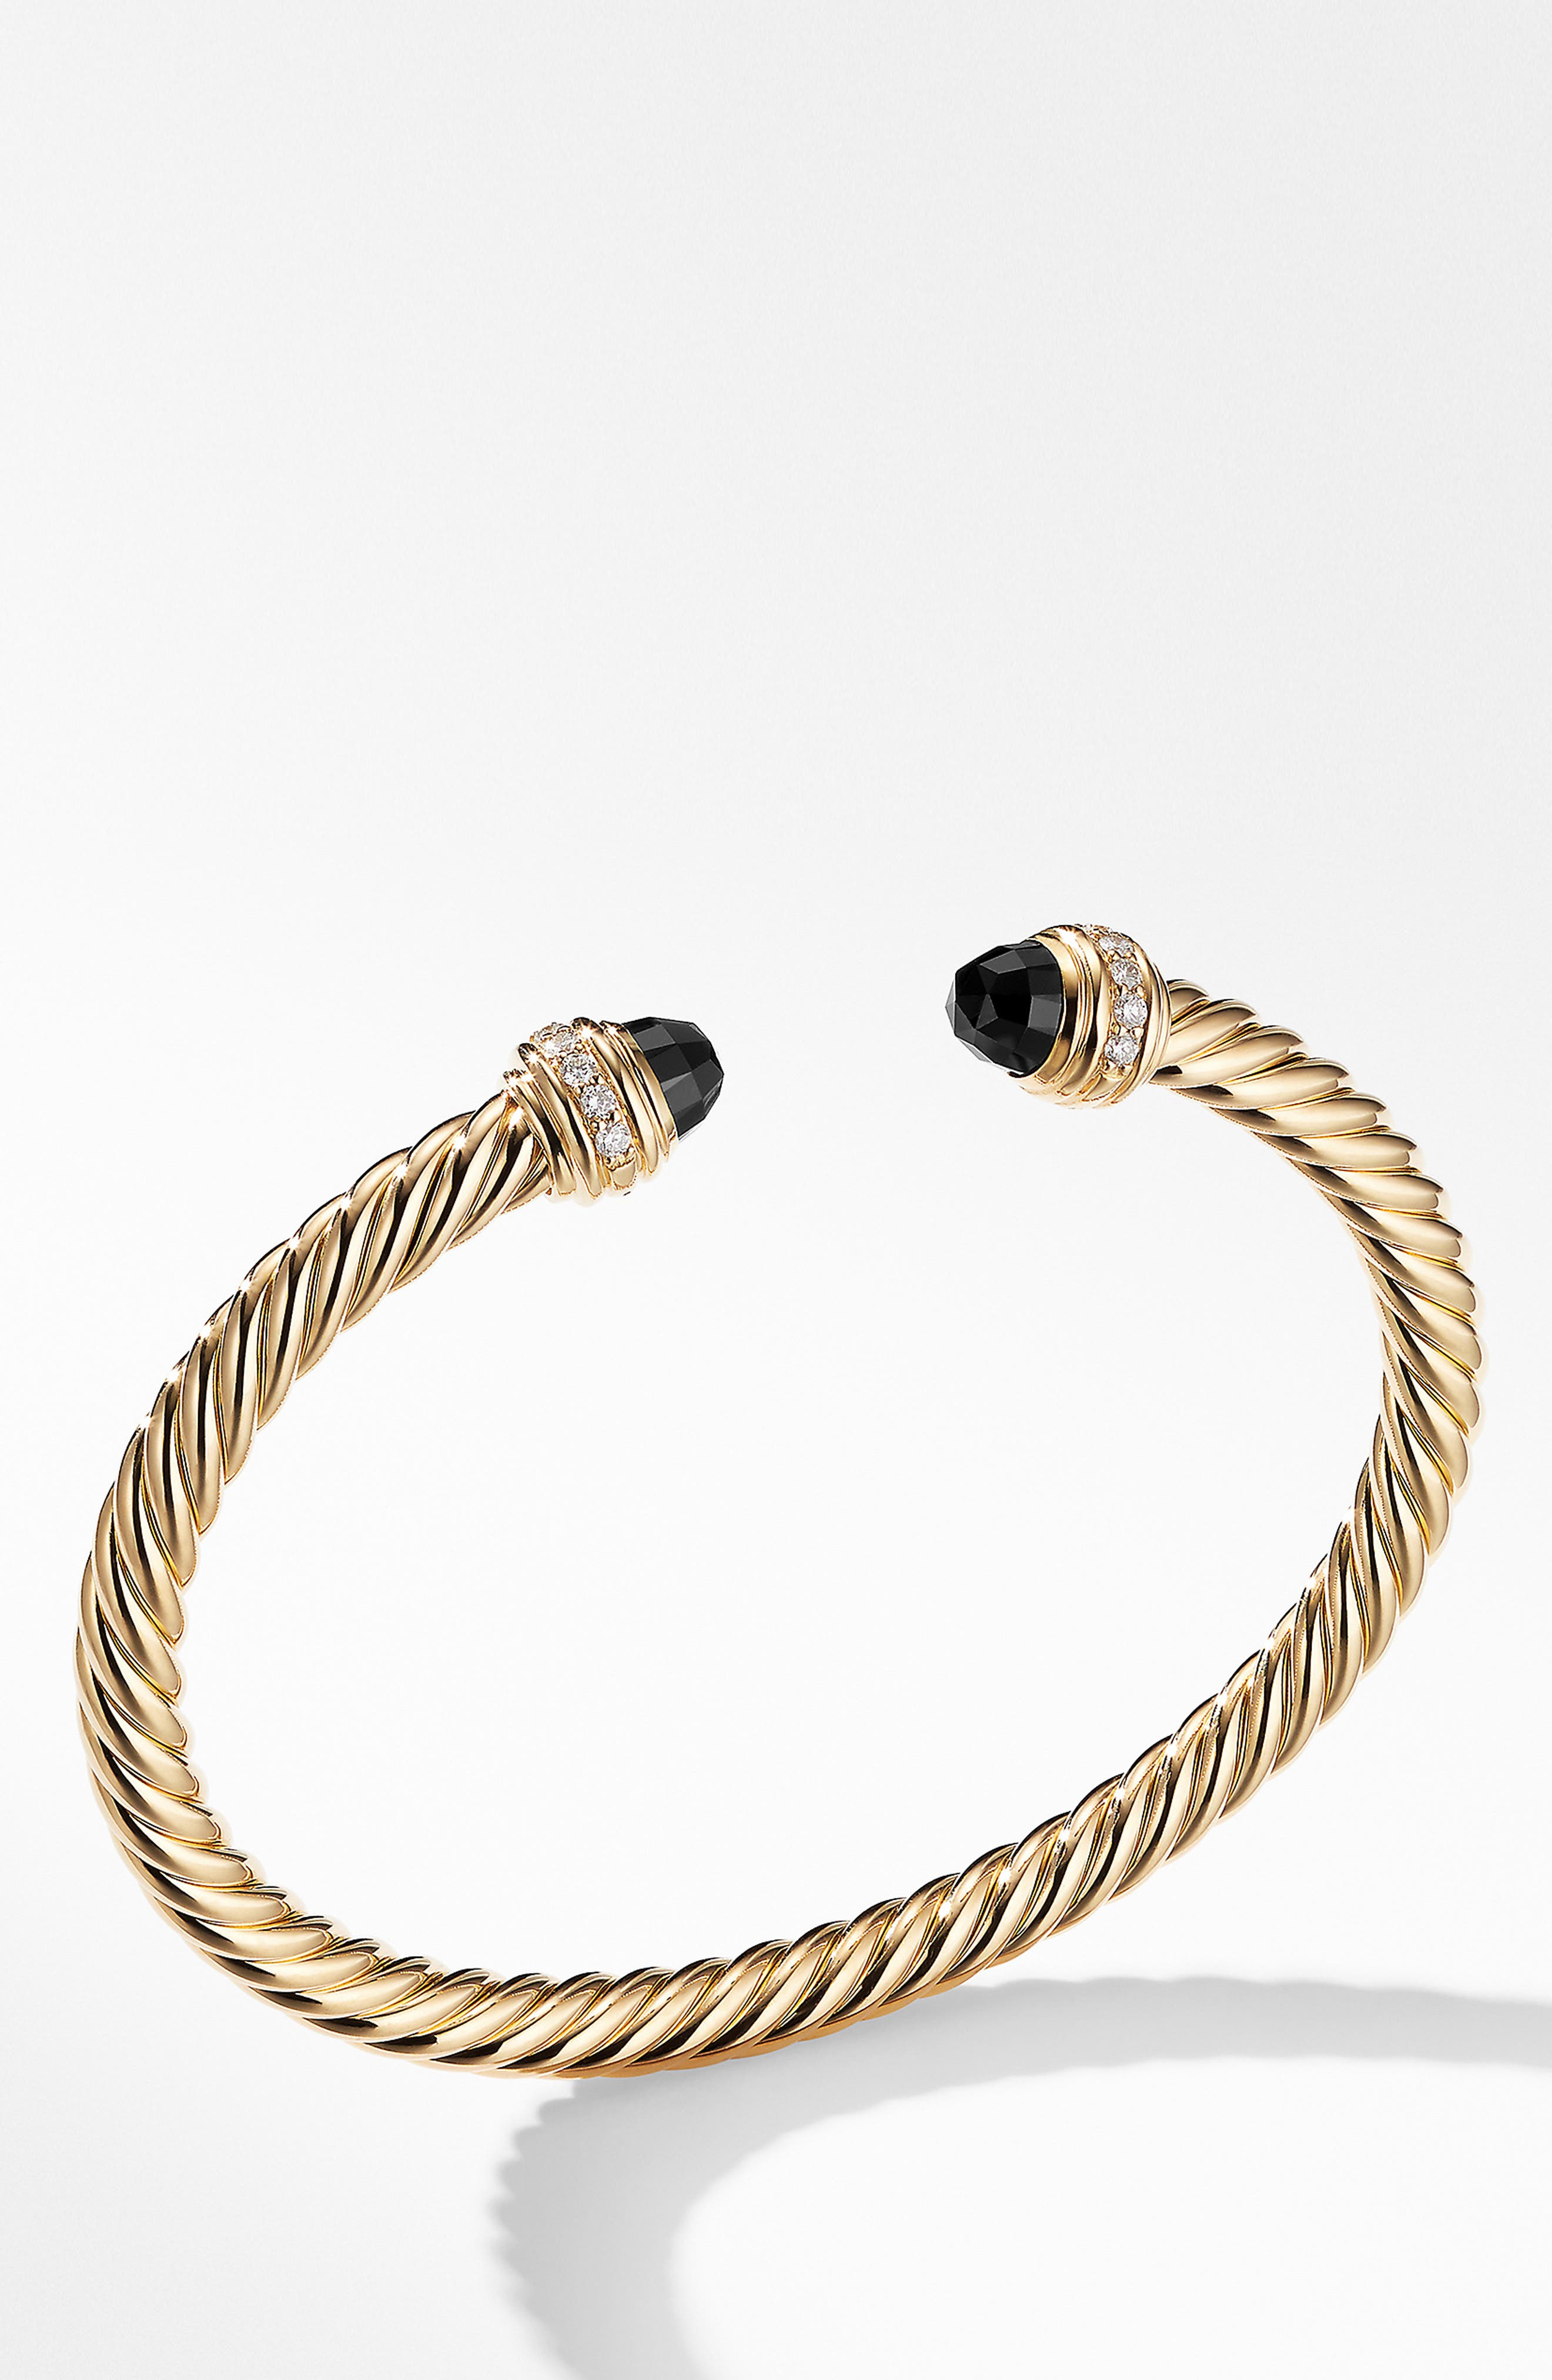 Cable Classics Bracelet with Semiprecious Stones & Diamonds, 5mm,                             Main thumbnail 1, color,                             YELLOW GOLD/ DIAMOND/ BLACK